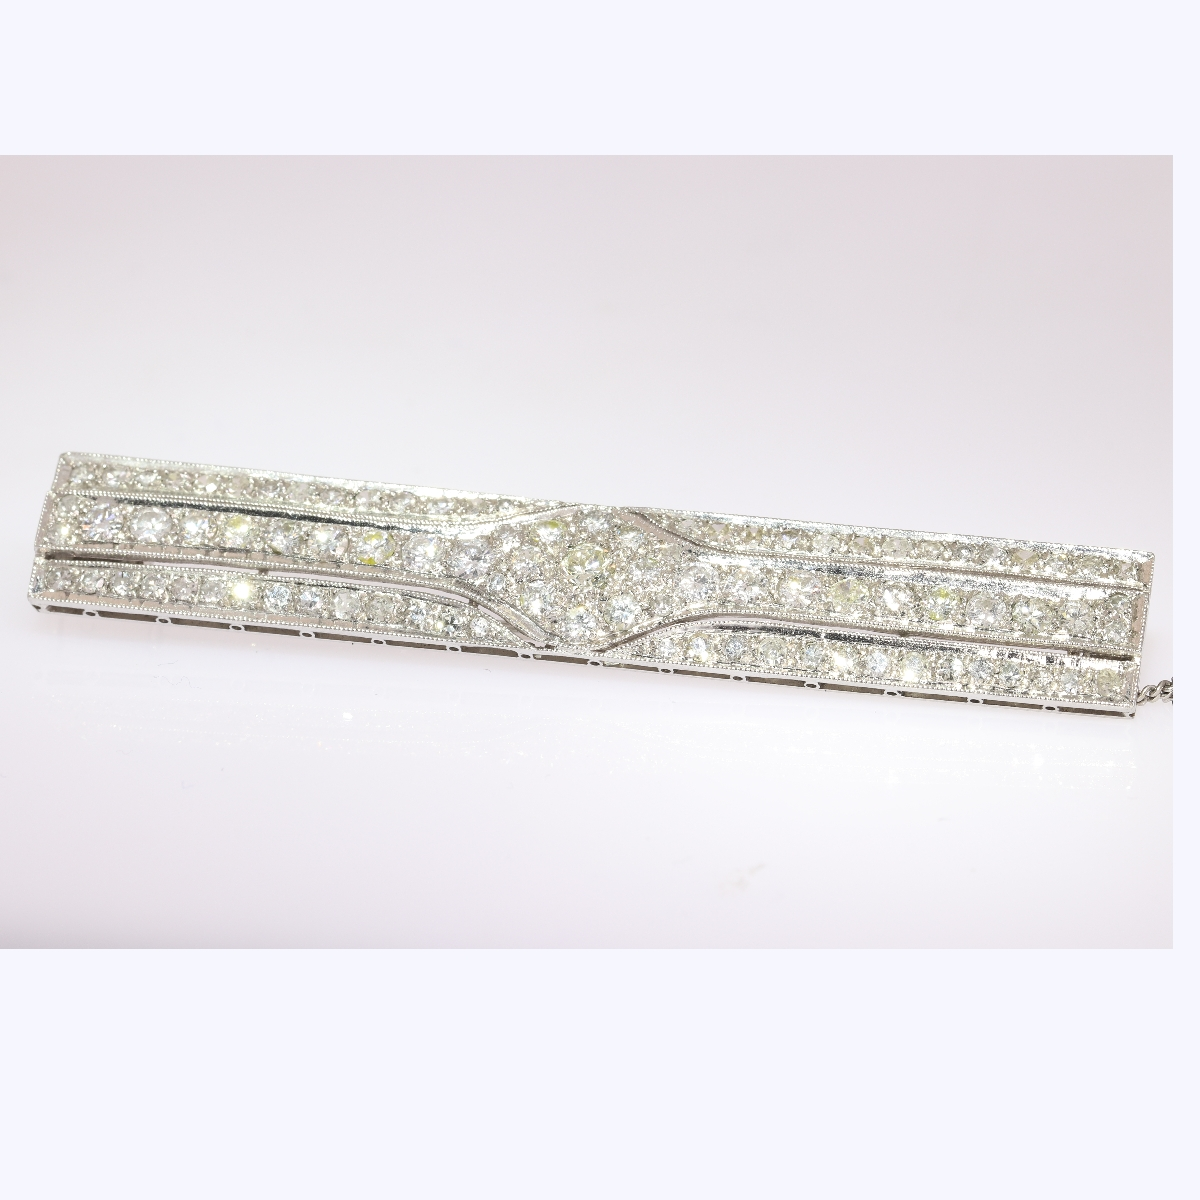 Platinum Art Deco diamond bar brooch